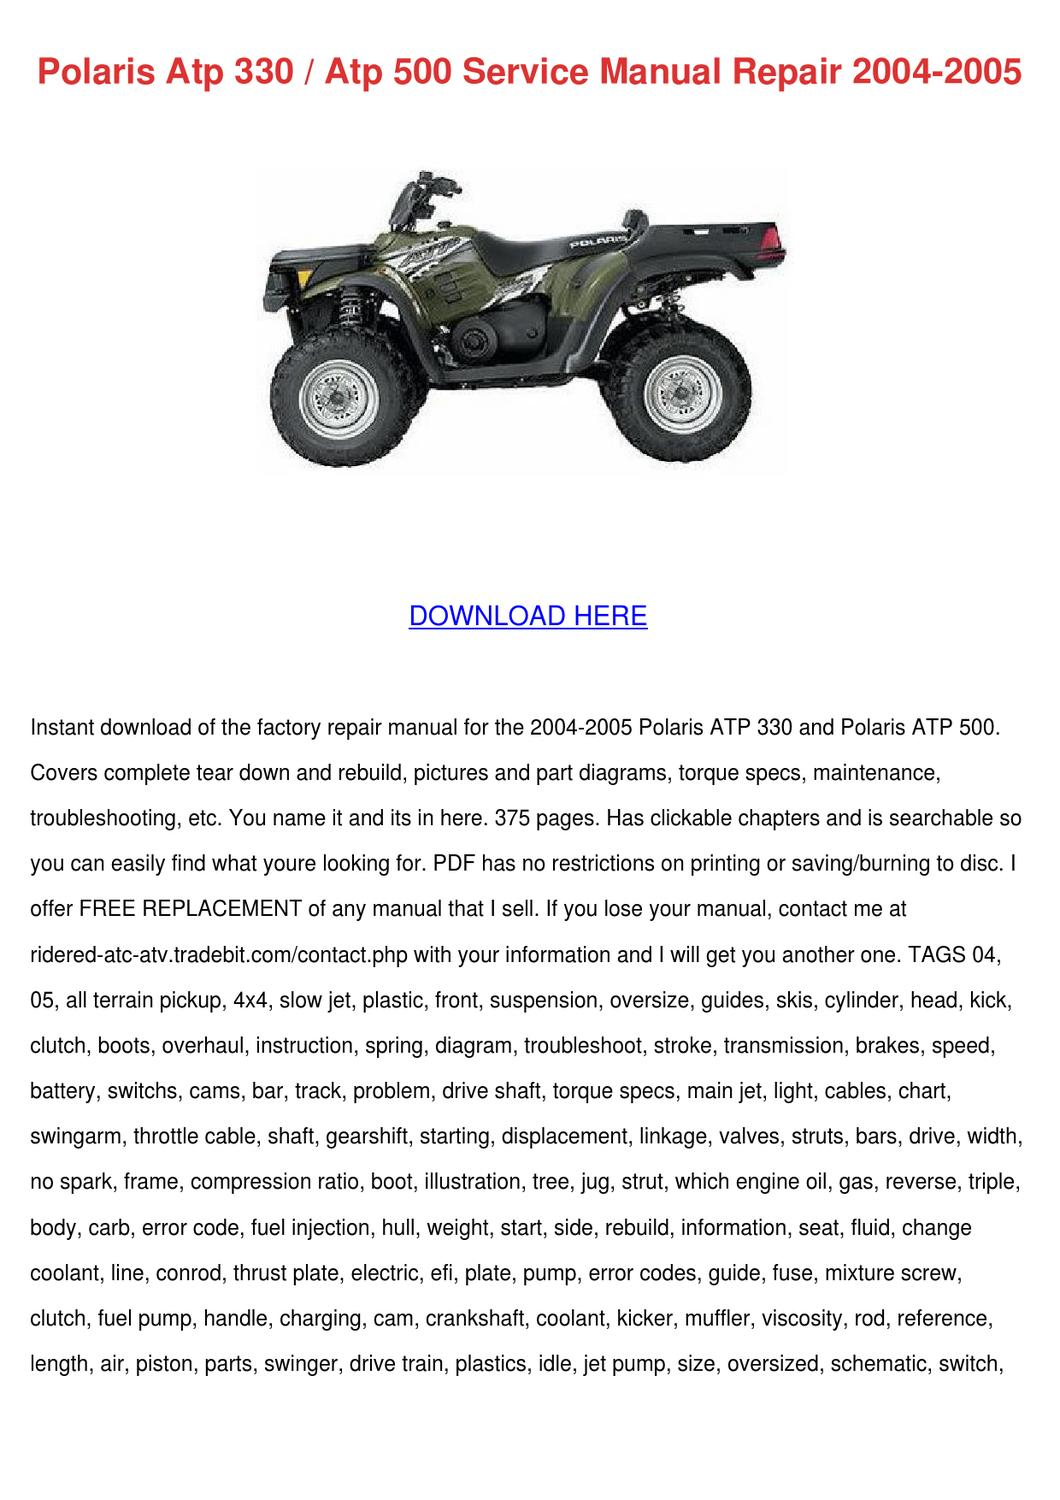 polaris atp 330 atp 500 service manual repair by tomeka rearick polaris atp 330 atp 500 service manual repair by tomeka rearick issuu